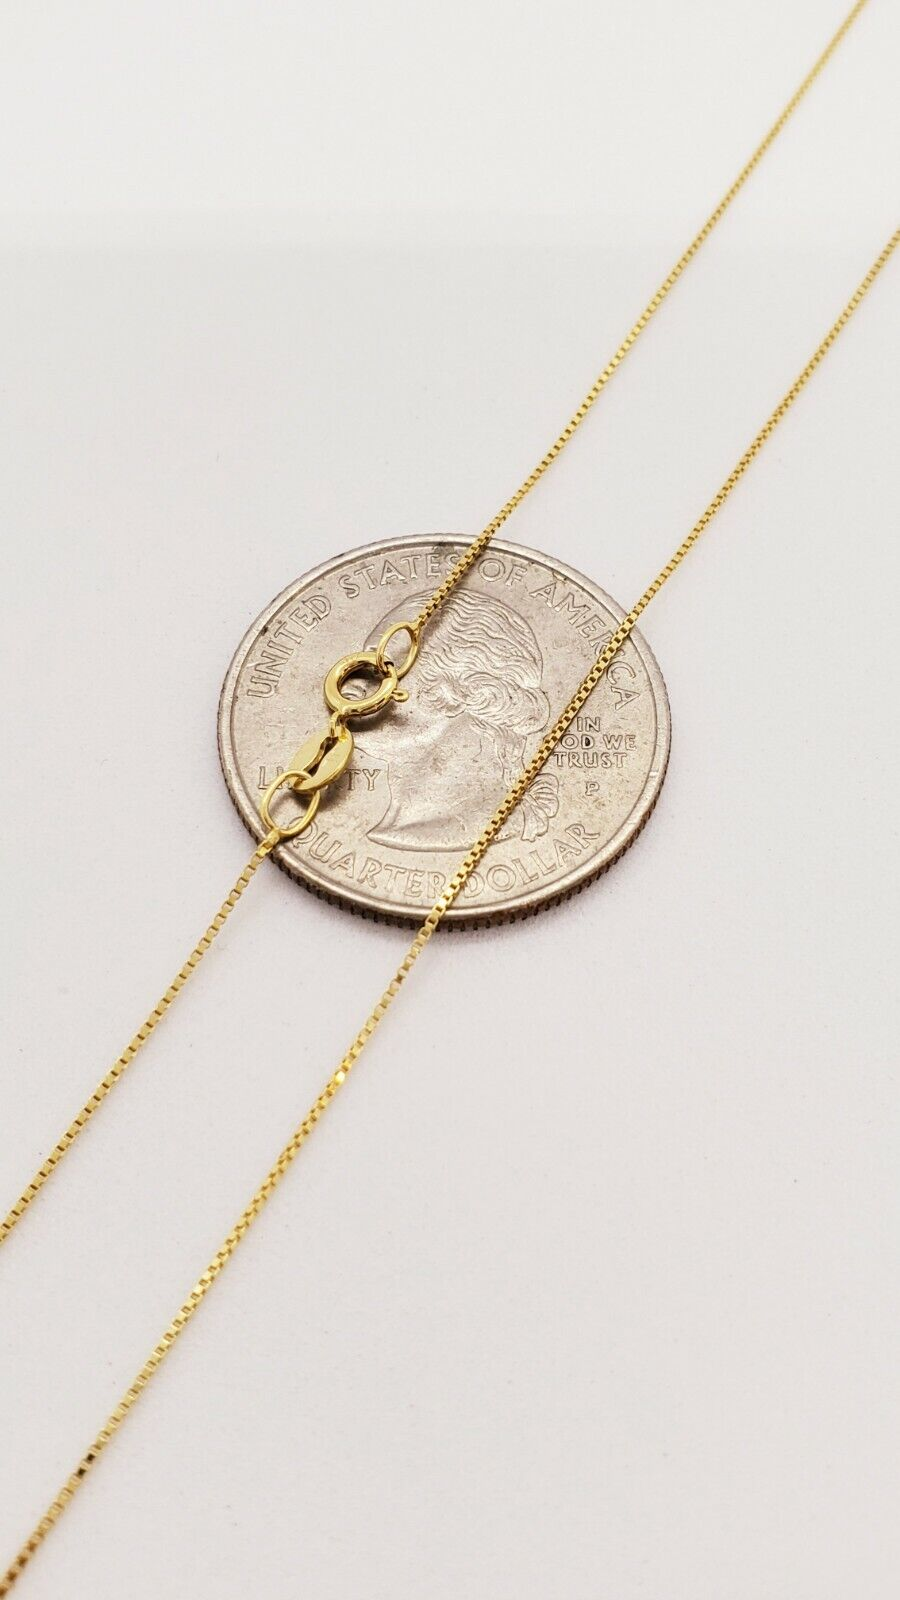 """10K Solid Yellow Gold Italian Box Chain Men's Women's Necklace 16"""" - 24"""" inches 4"""